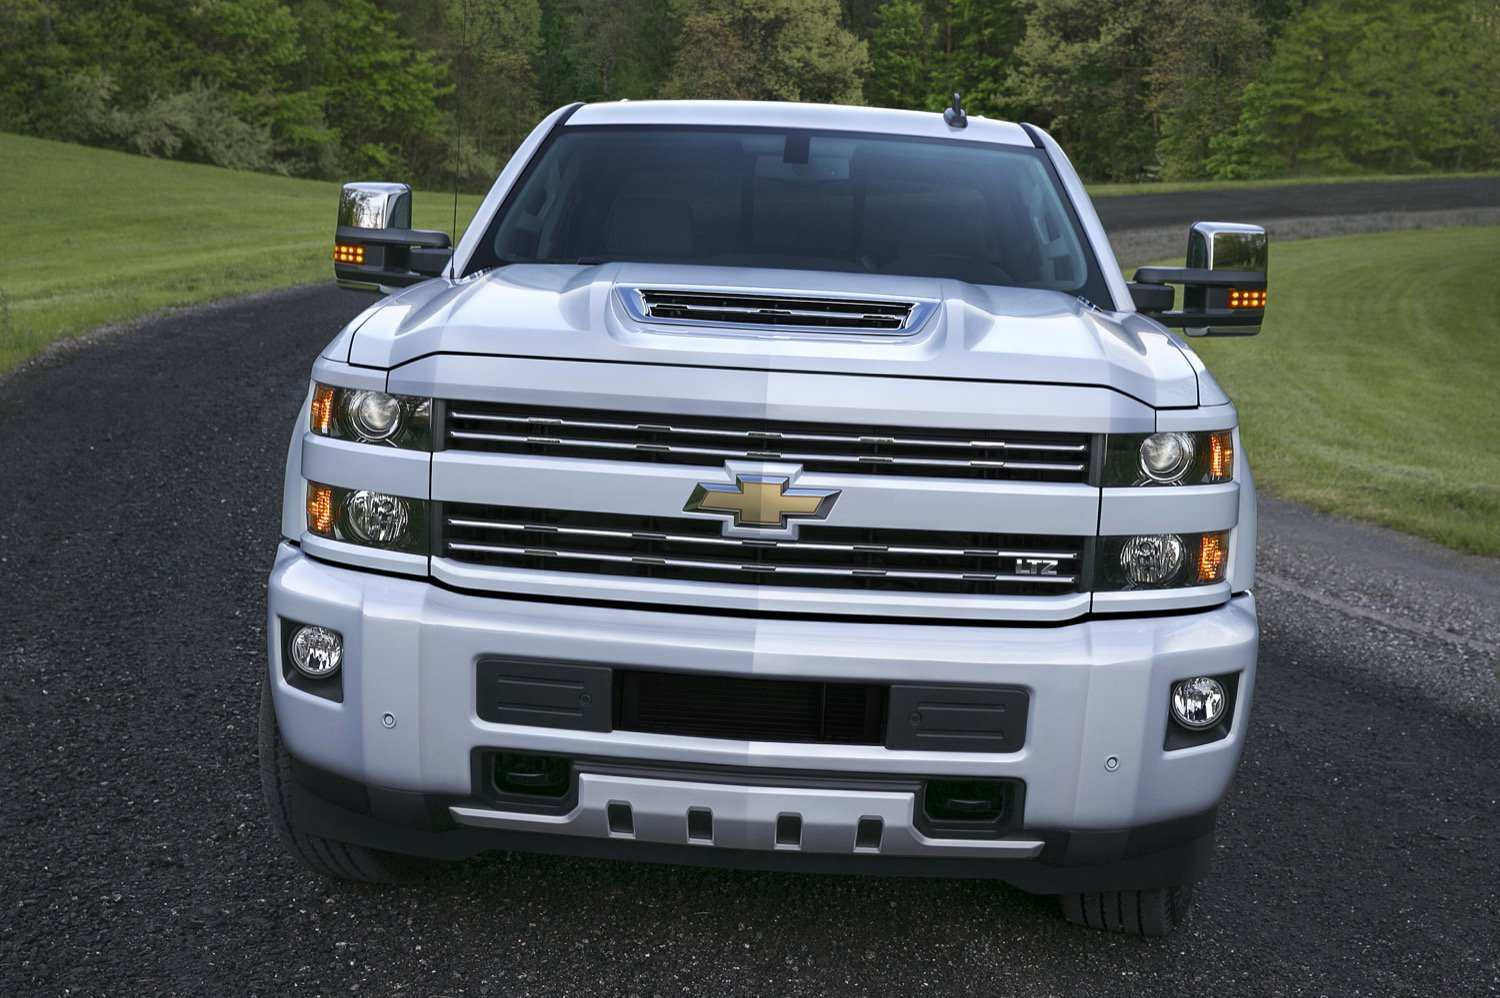 17 Great 2019 Chevrolet 2500 Duramax Performance by 2019 Chevrolet 2500 Duramax